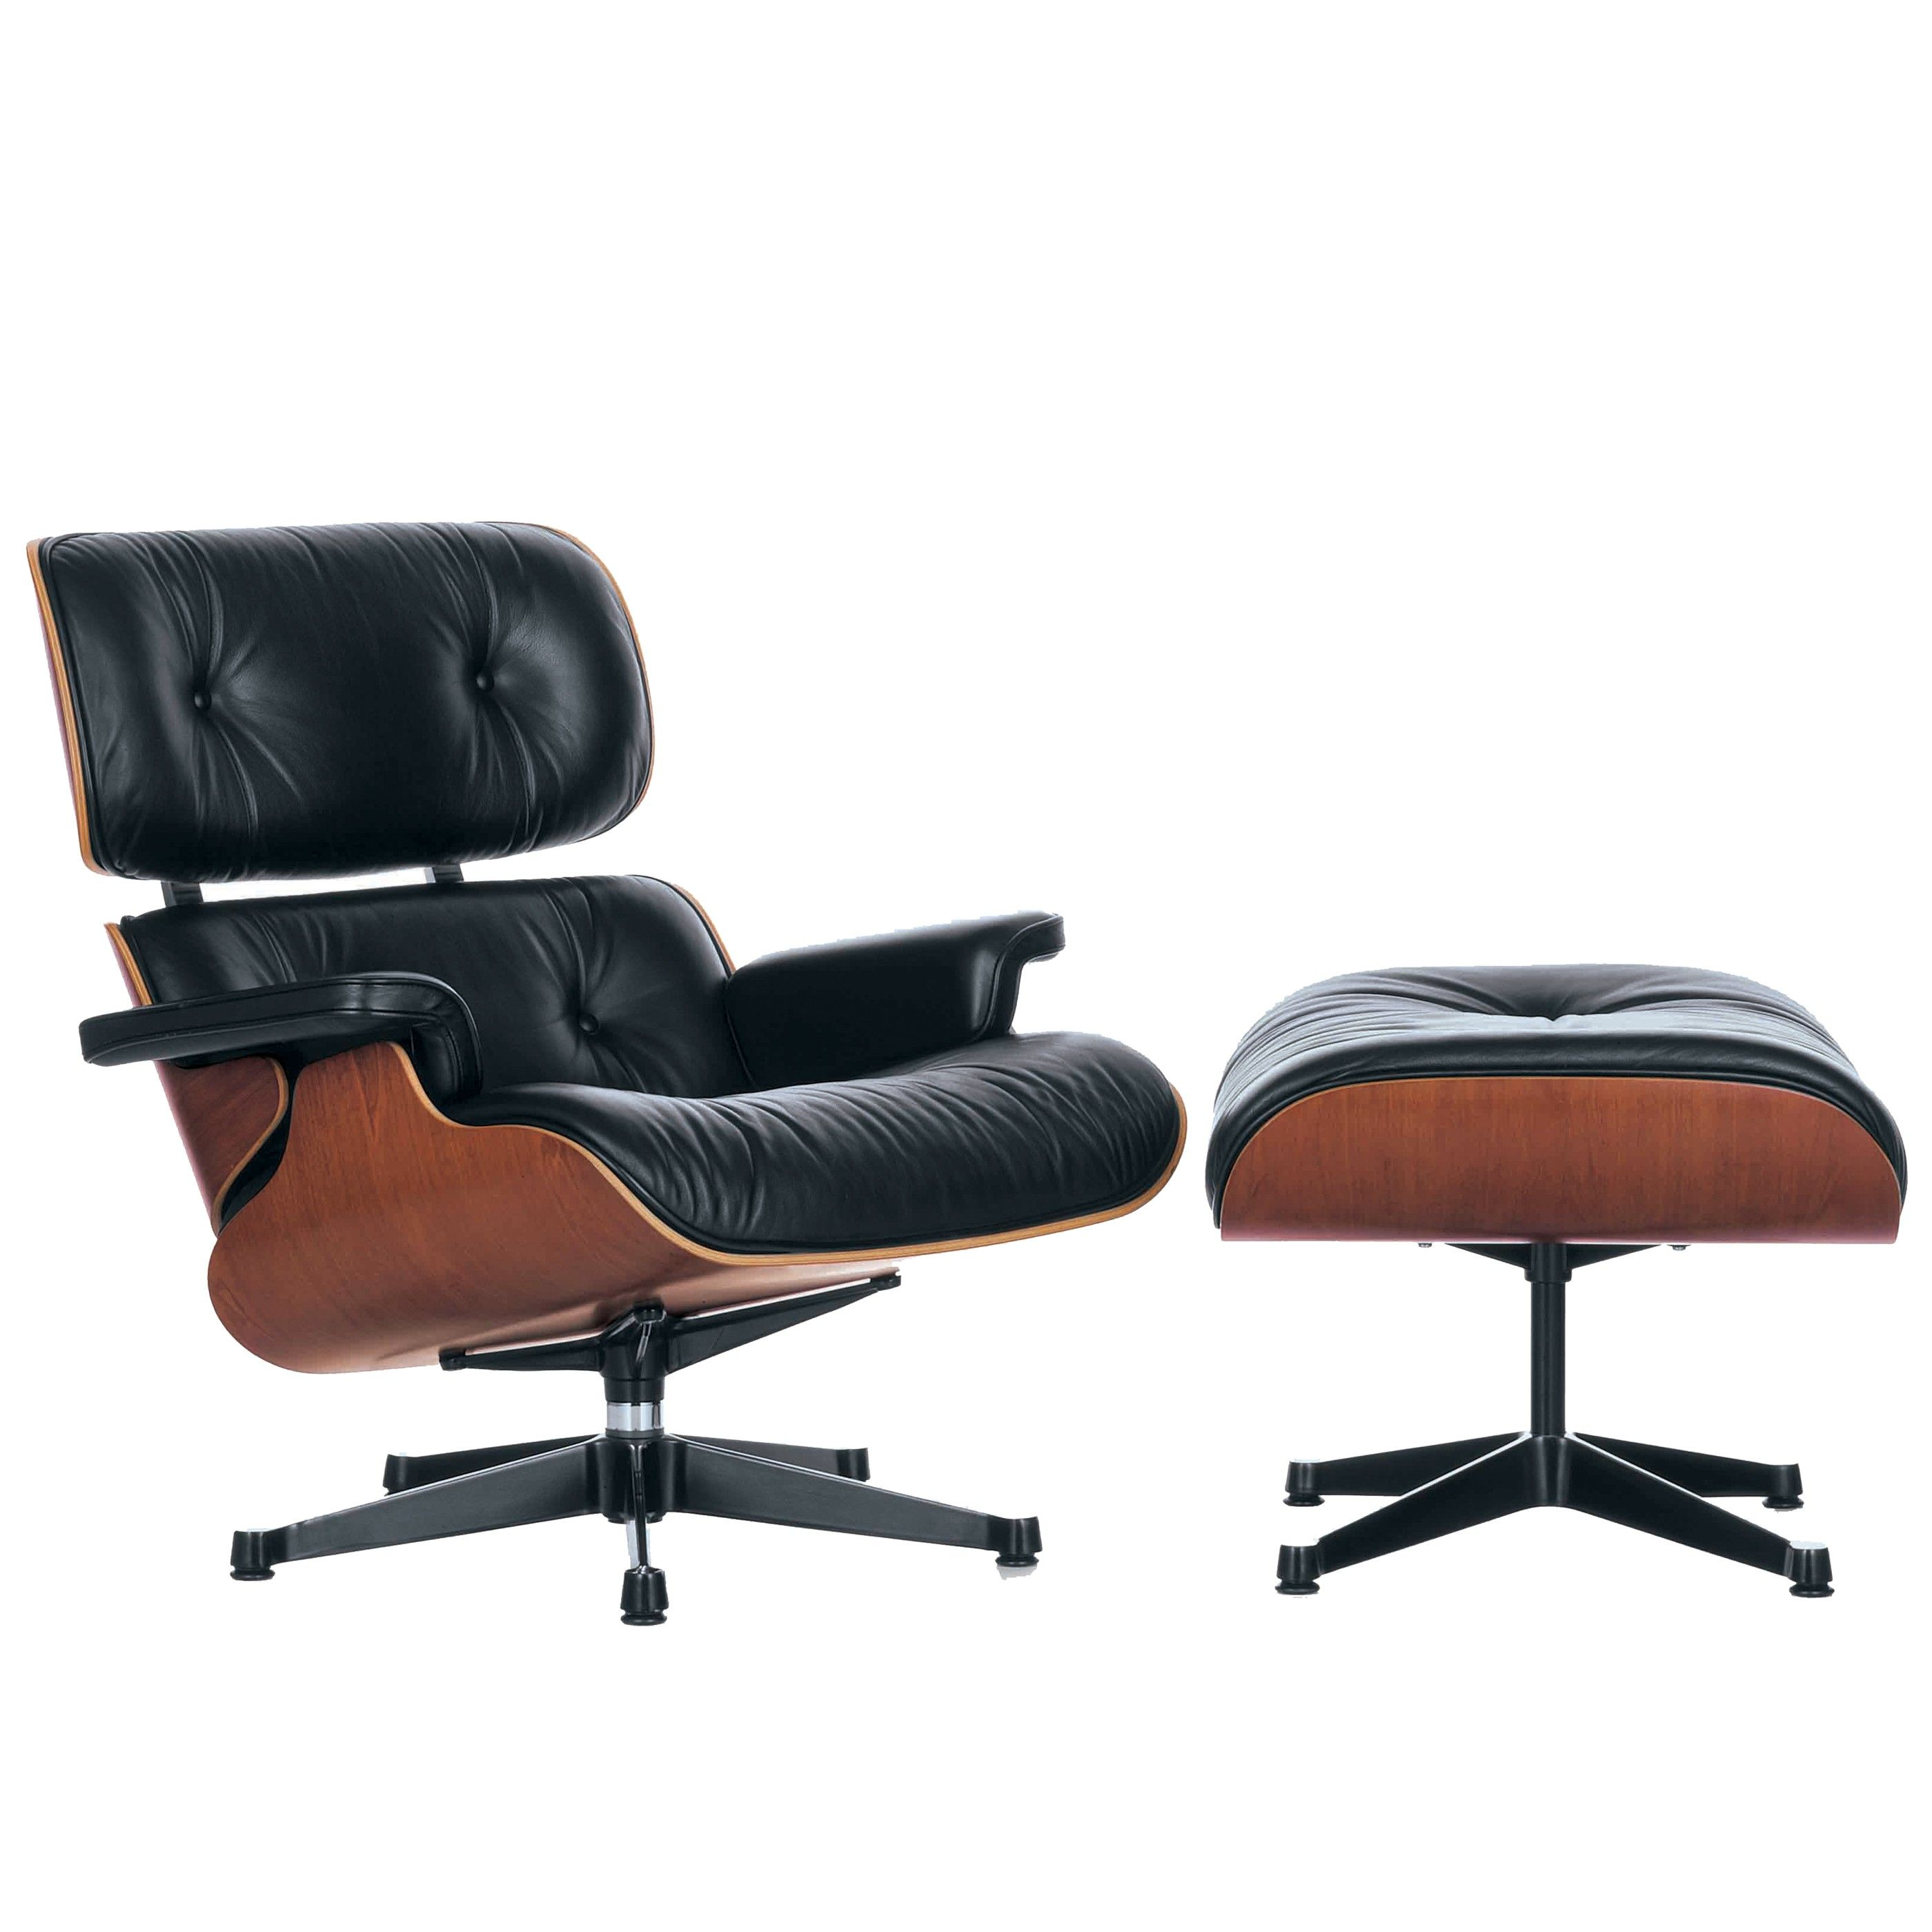 https://www.turbulences-deco.fr/wp-content/uploads/2018/01/vitra-eames-loungechair-met-ottoman.jpg